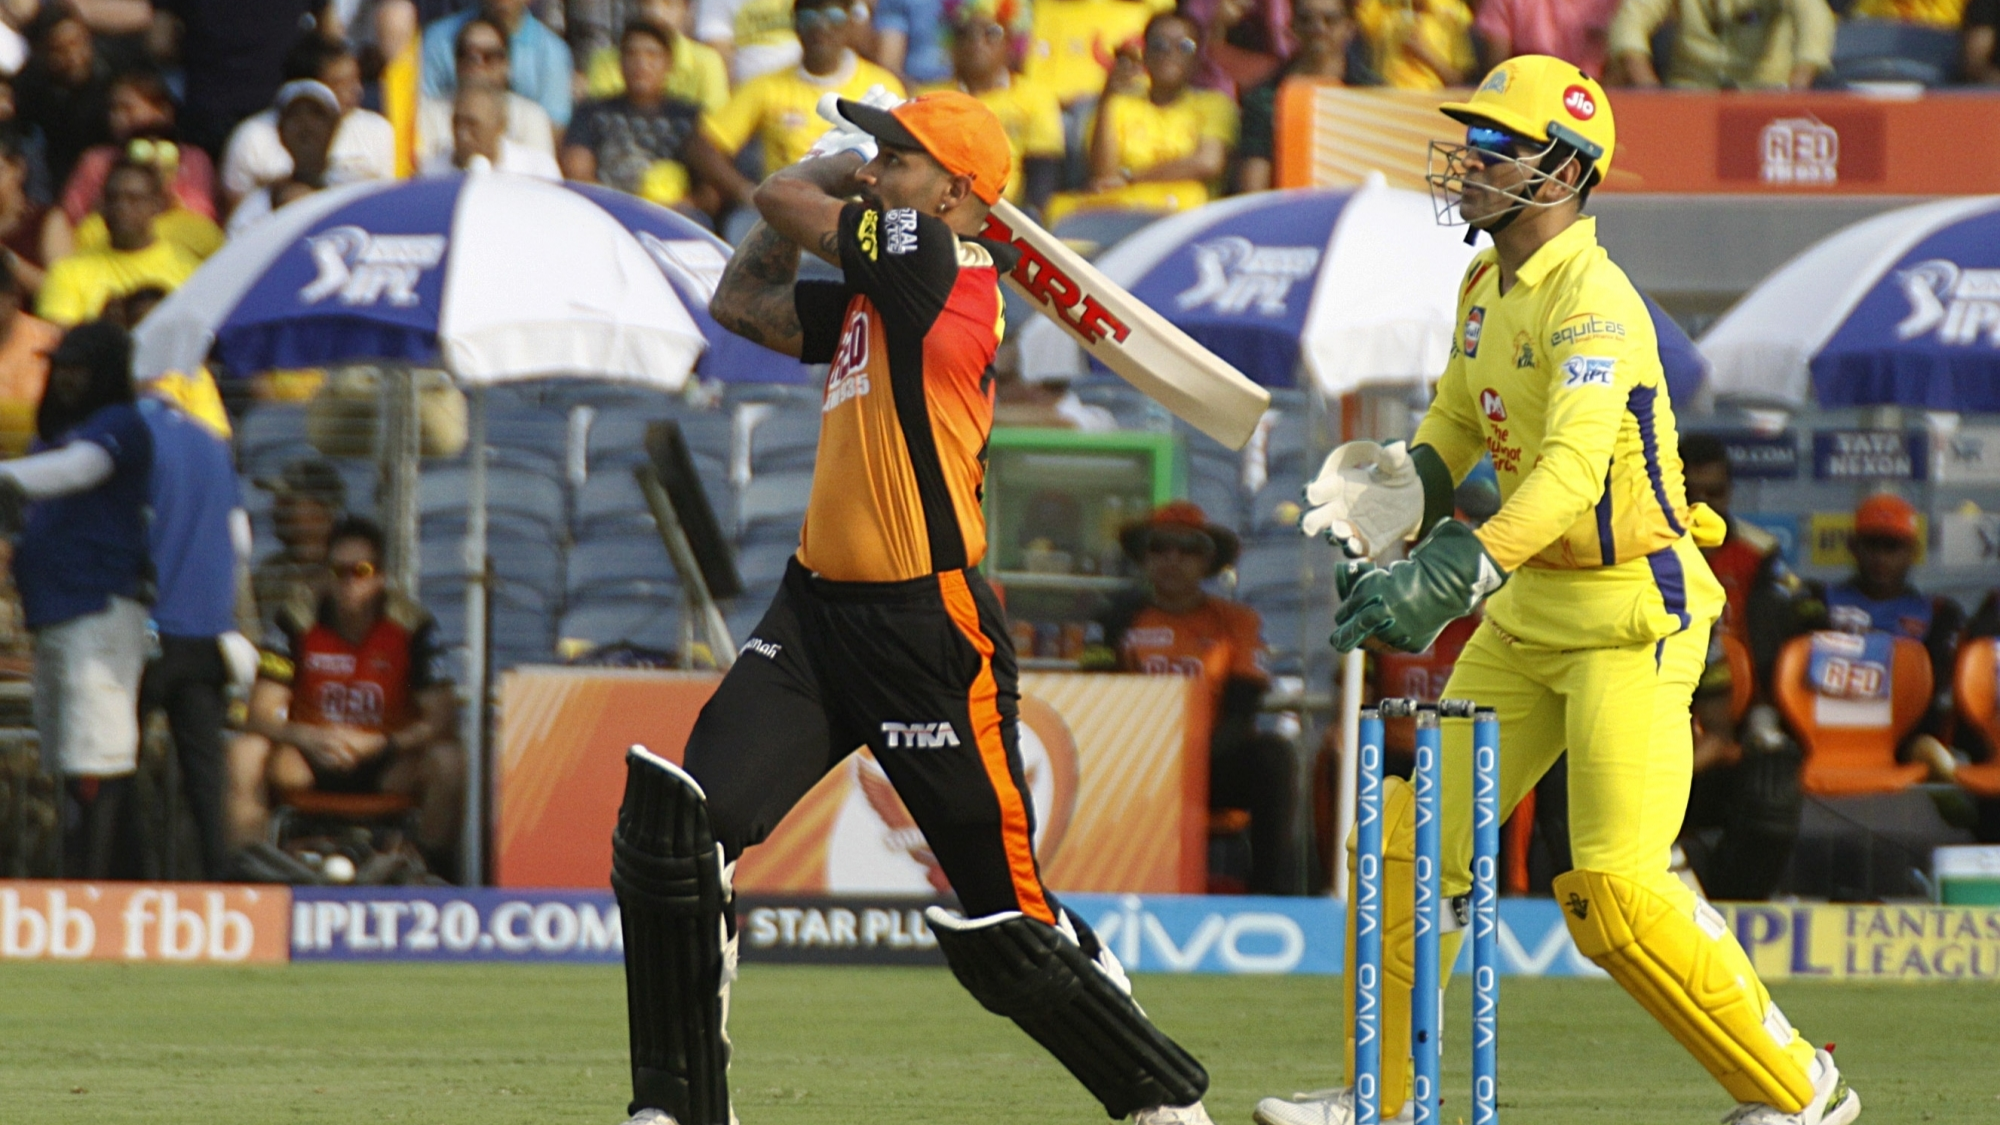 IPL 2018 : Qualifier 1, SRH vs CSK - Statistical Preview